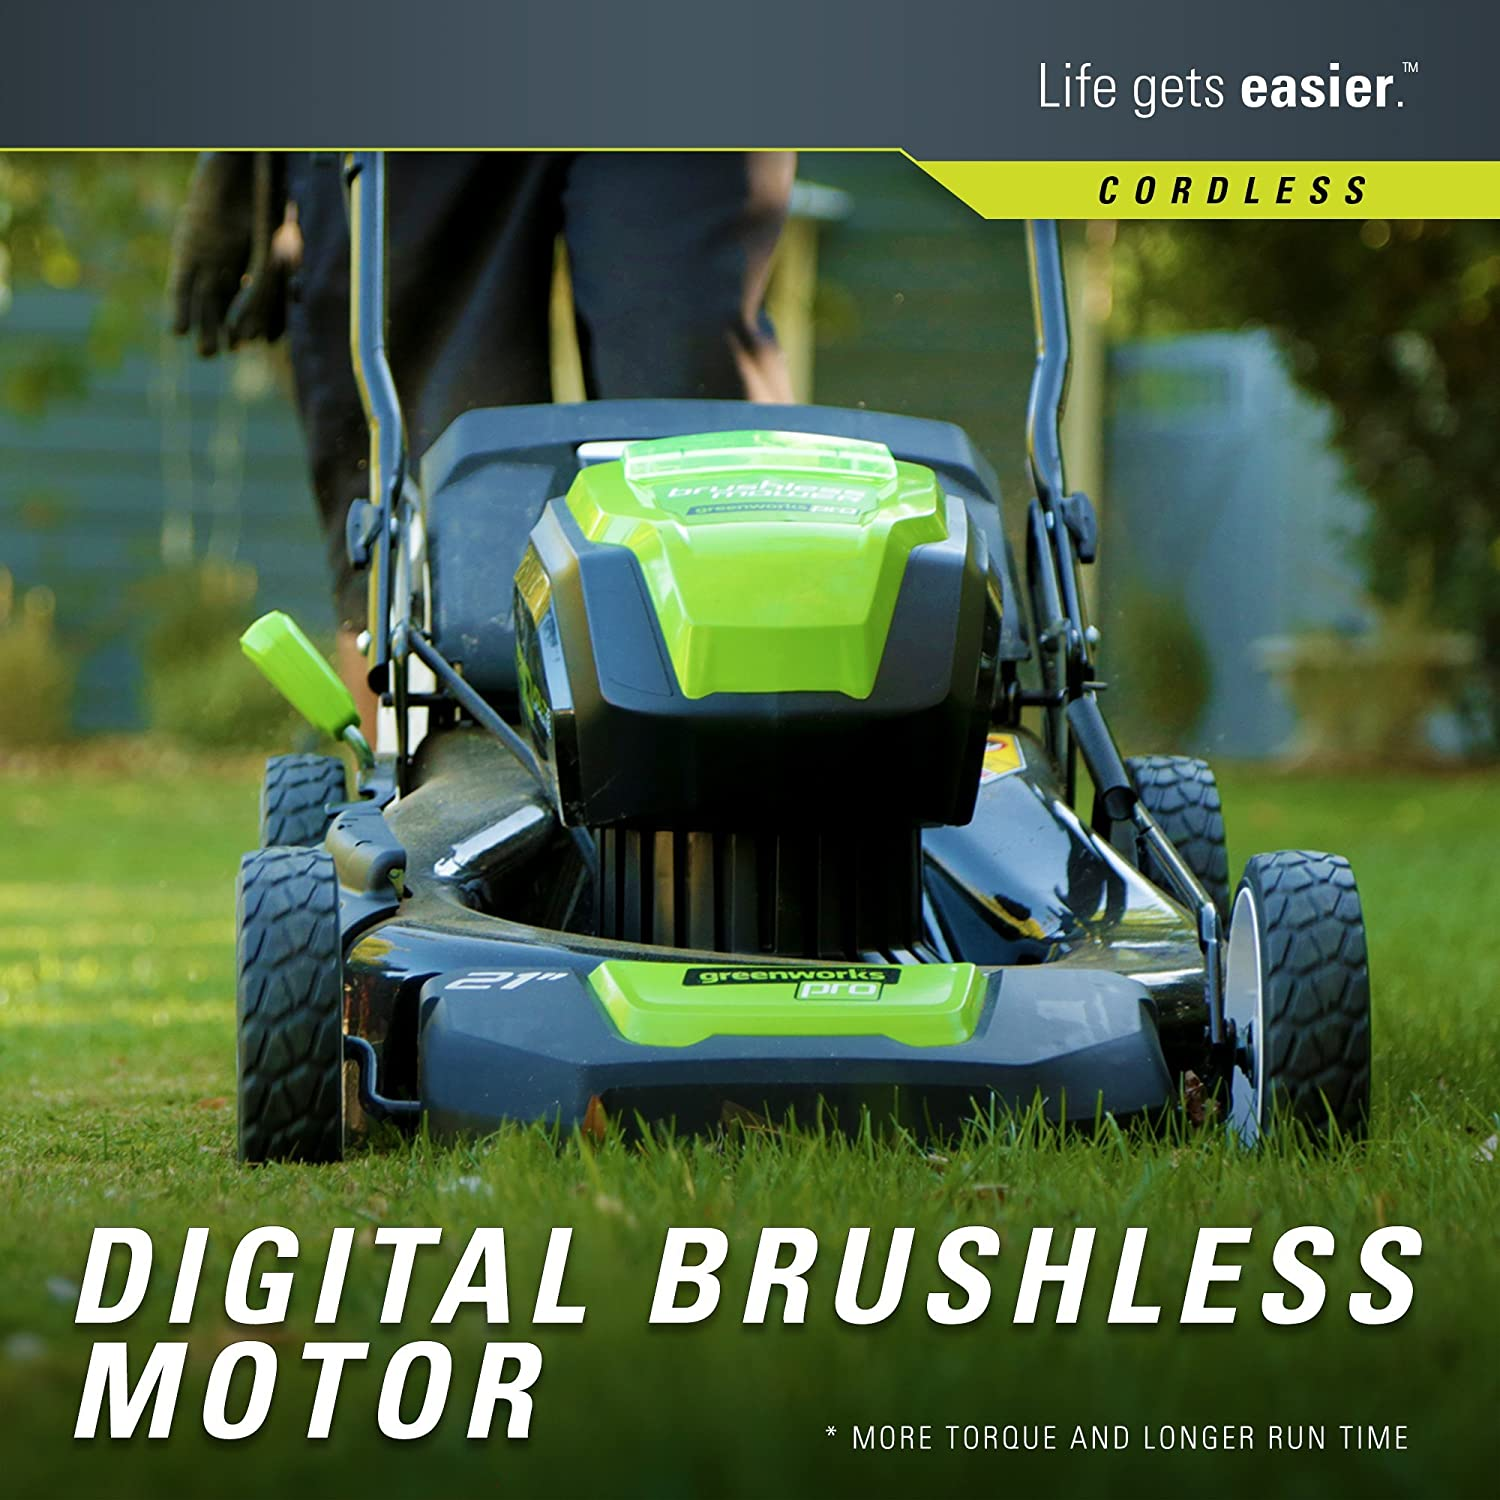 Greenworks GLM801601 Lawn Mower review